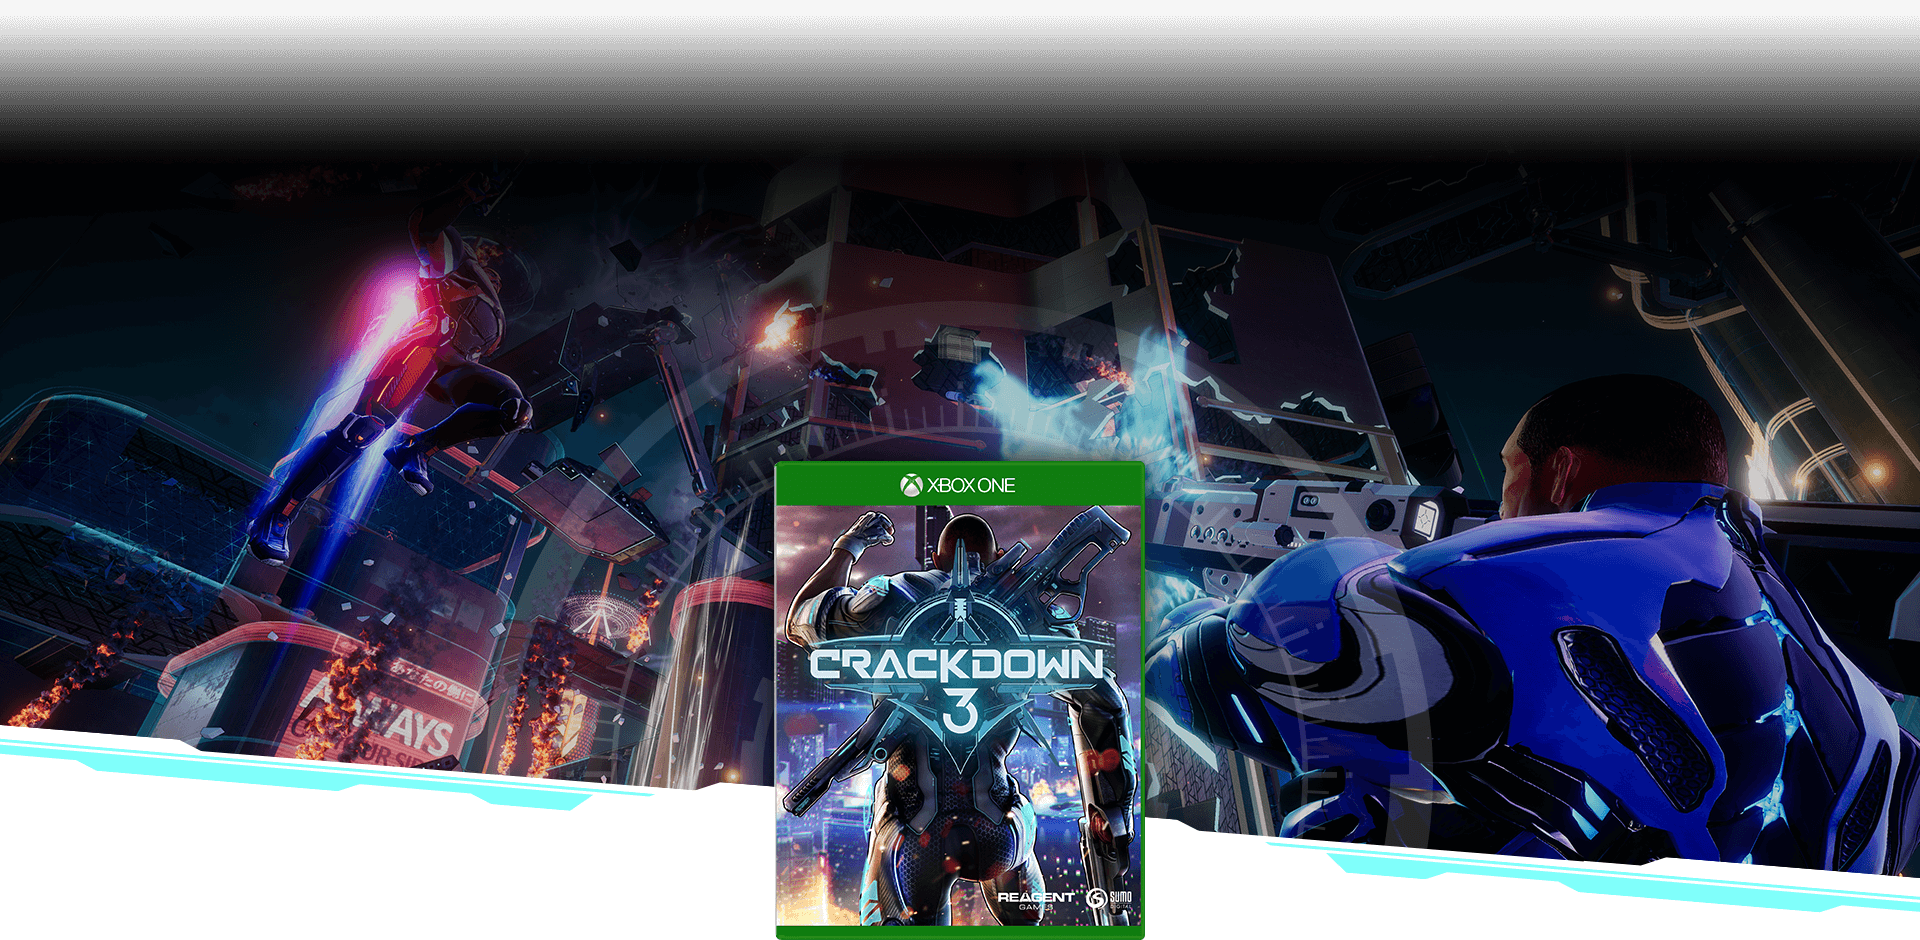 Crackdown 3 boxshot over background image of an agent firing a weapon next to a graffiti-painted brick wall